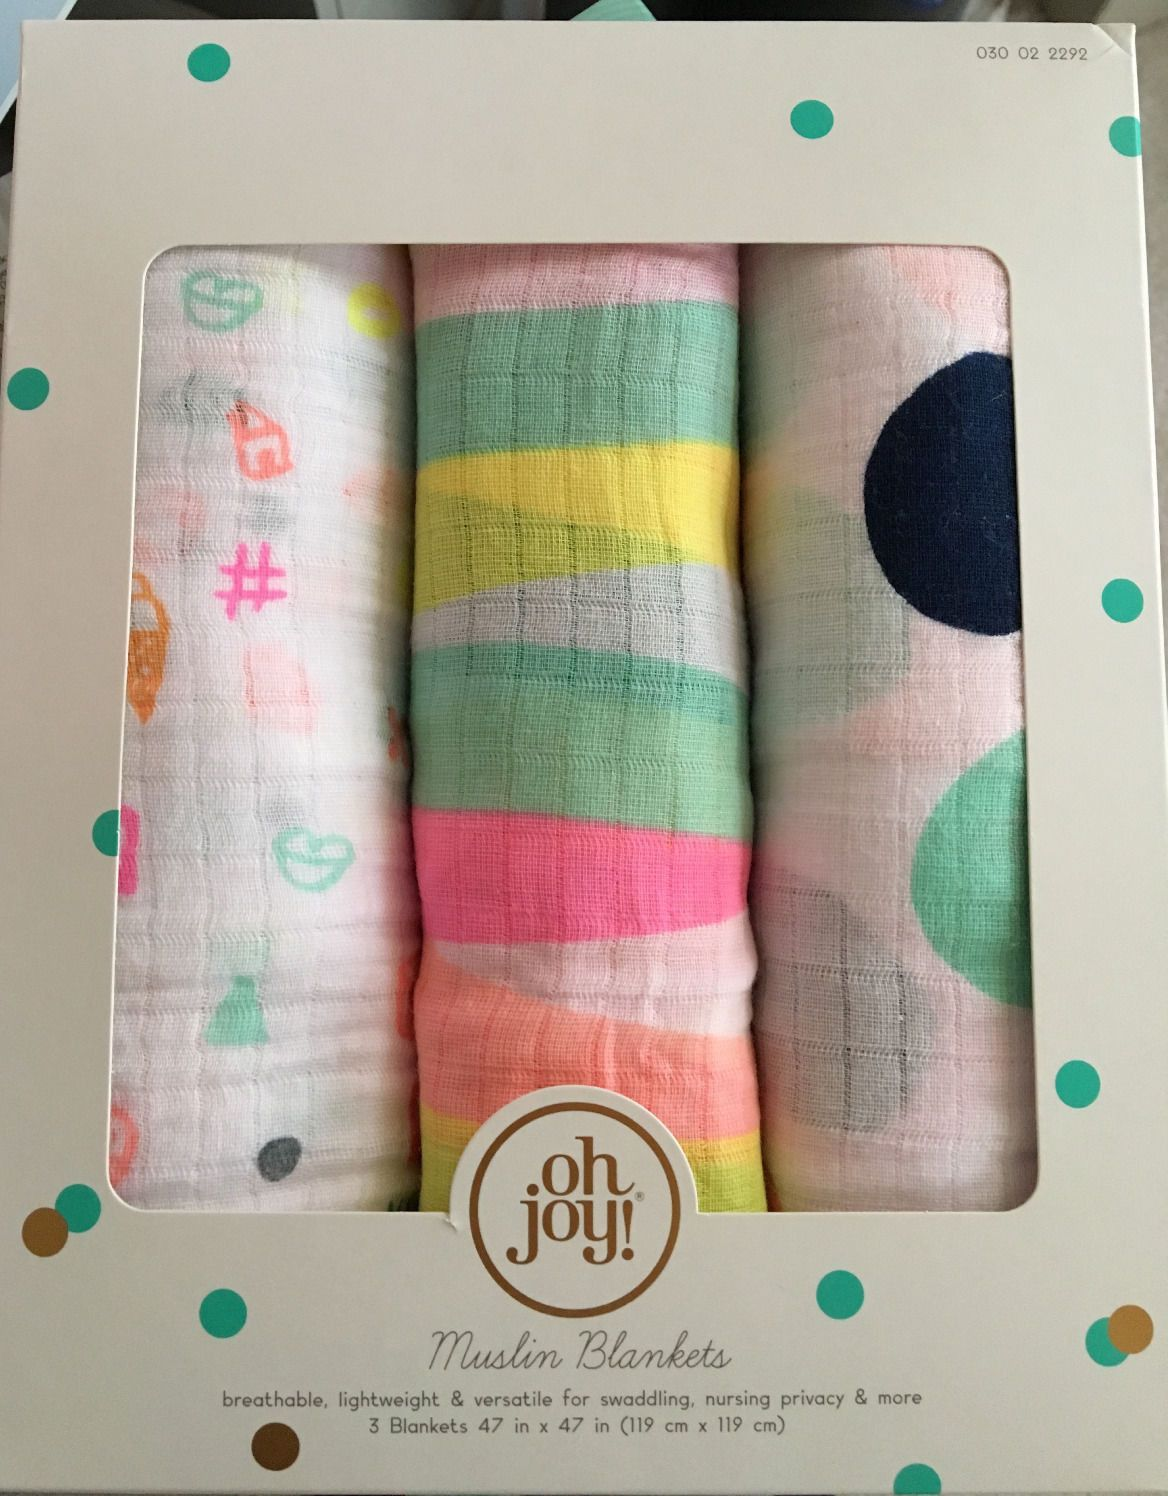 Swaddle Blankets Target Glamorous Nib Oh Joy Target Baby Muslin 3 Swaddling Blankets Pack Hard To Find Review